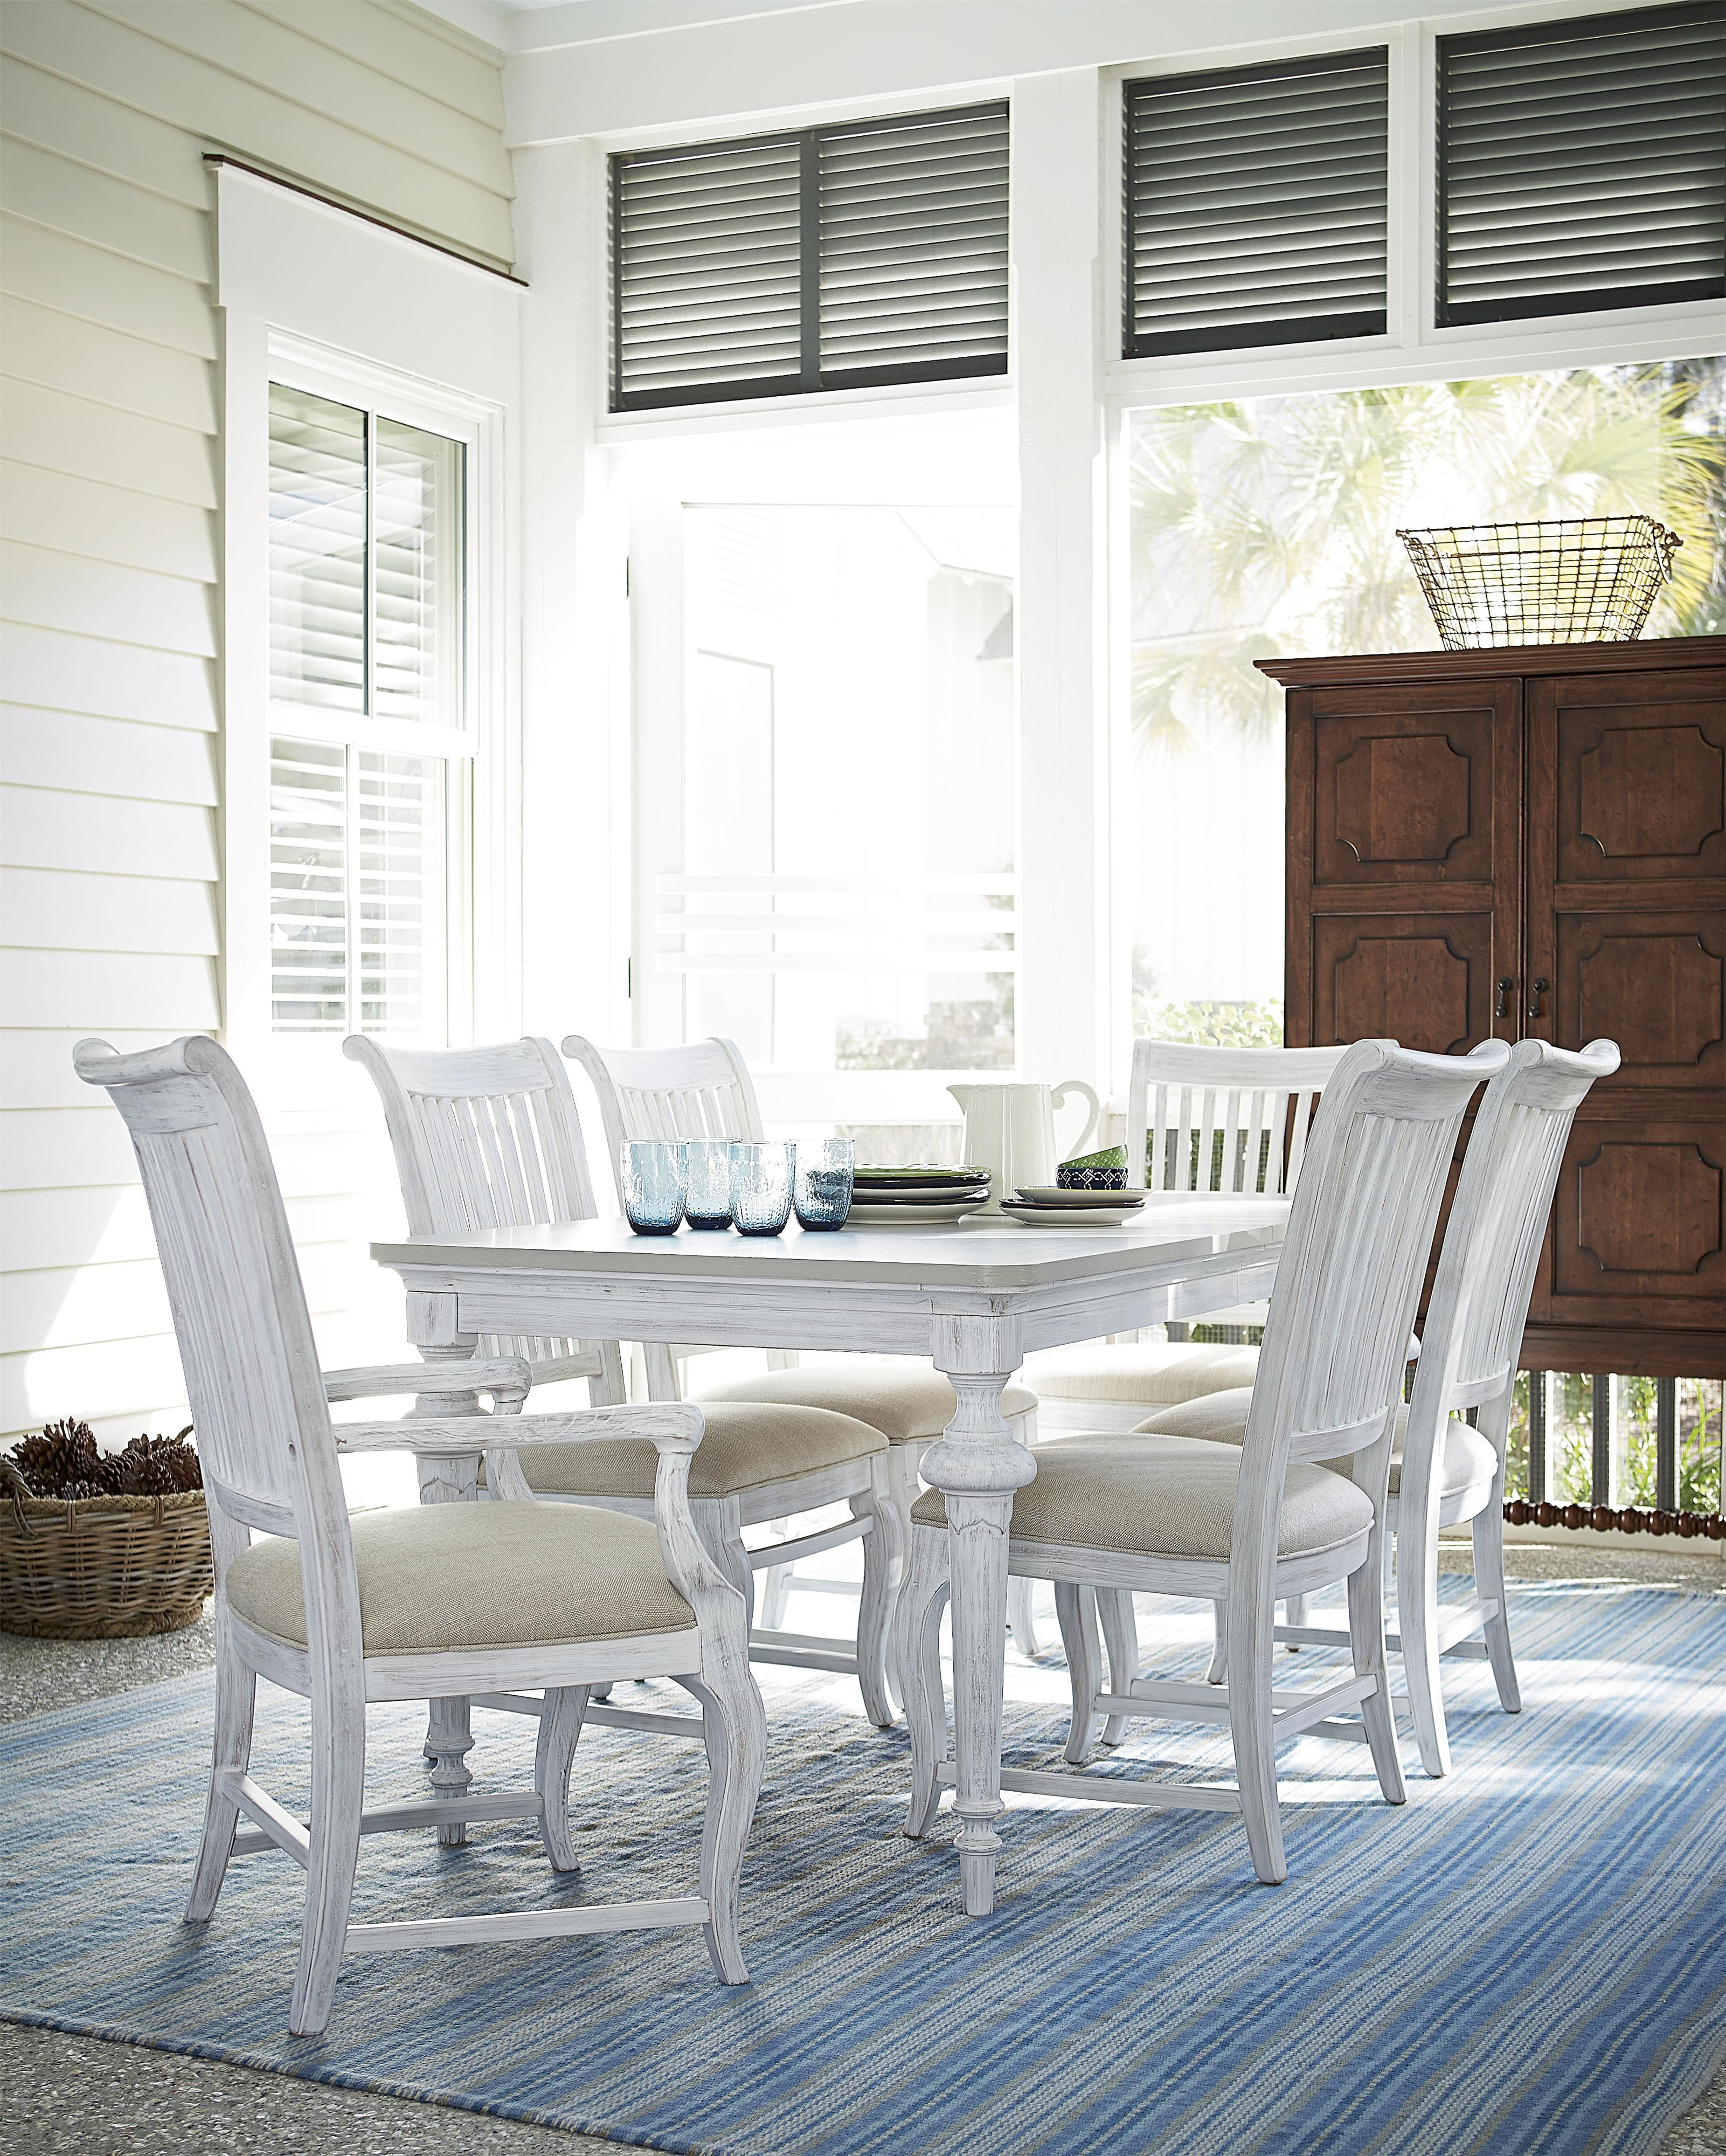 paula deen furniture dining room table paula deen by universal dogwood  kitchen table hudson. Paula Dean Furniture    Paula Deen By Universal Paula Deen Home